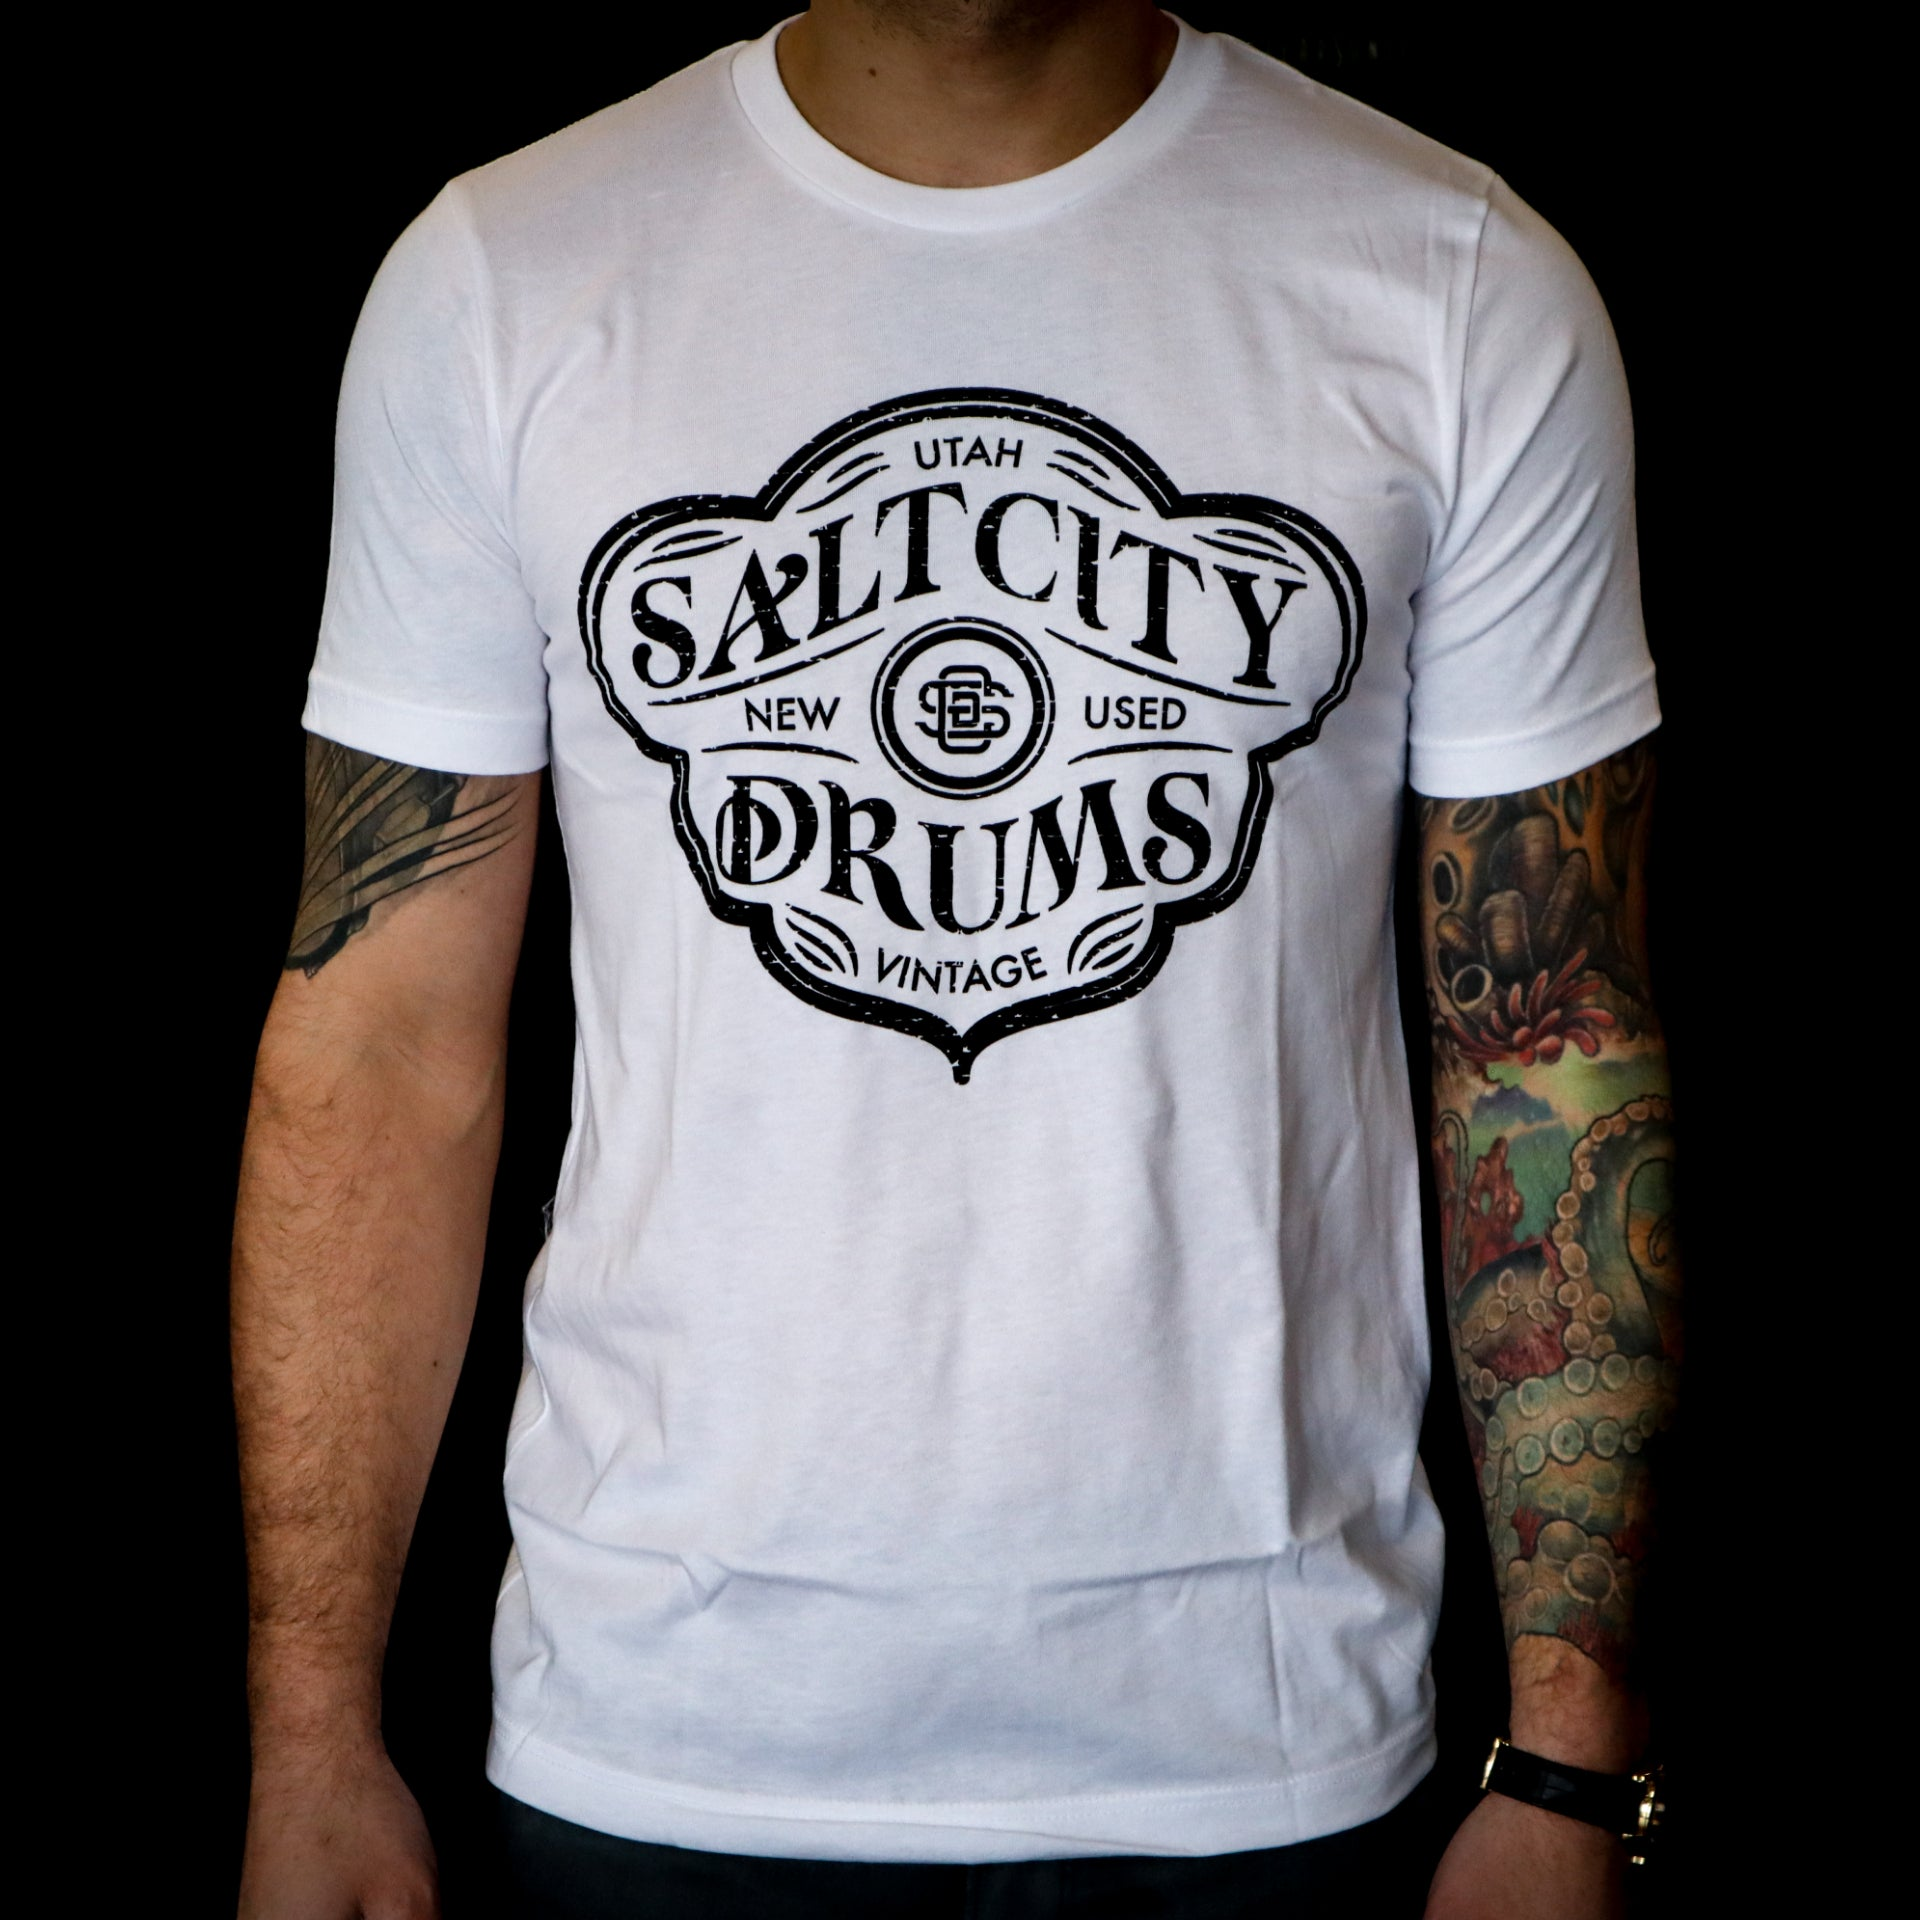 Salt City Drums White Tee w/ Vintage Black Logo